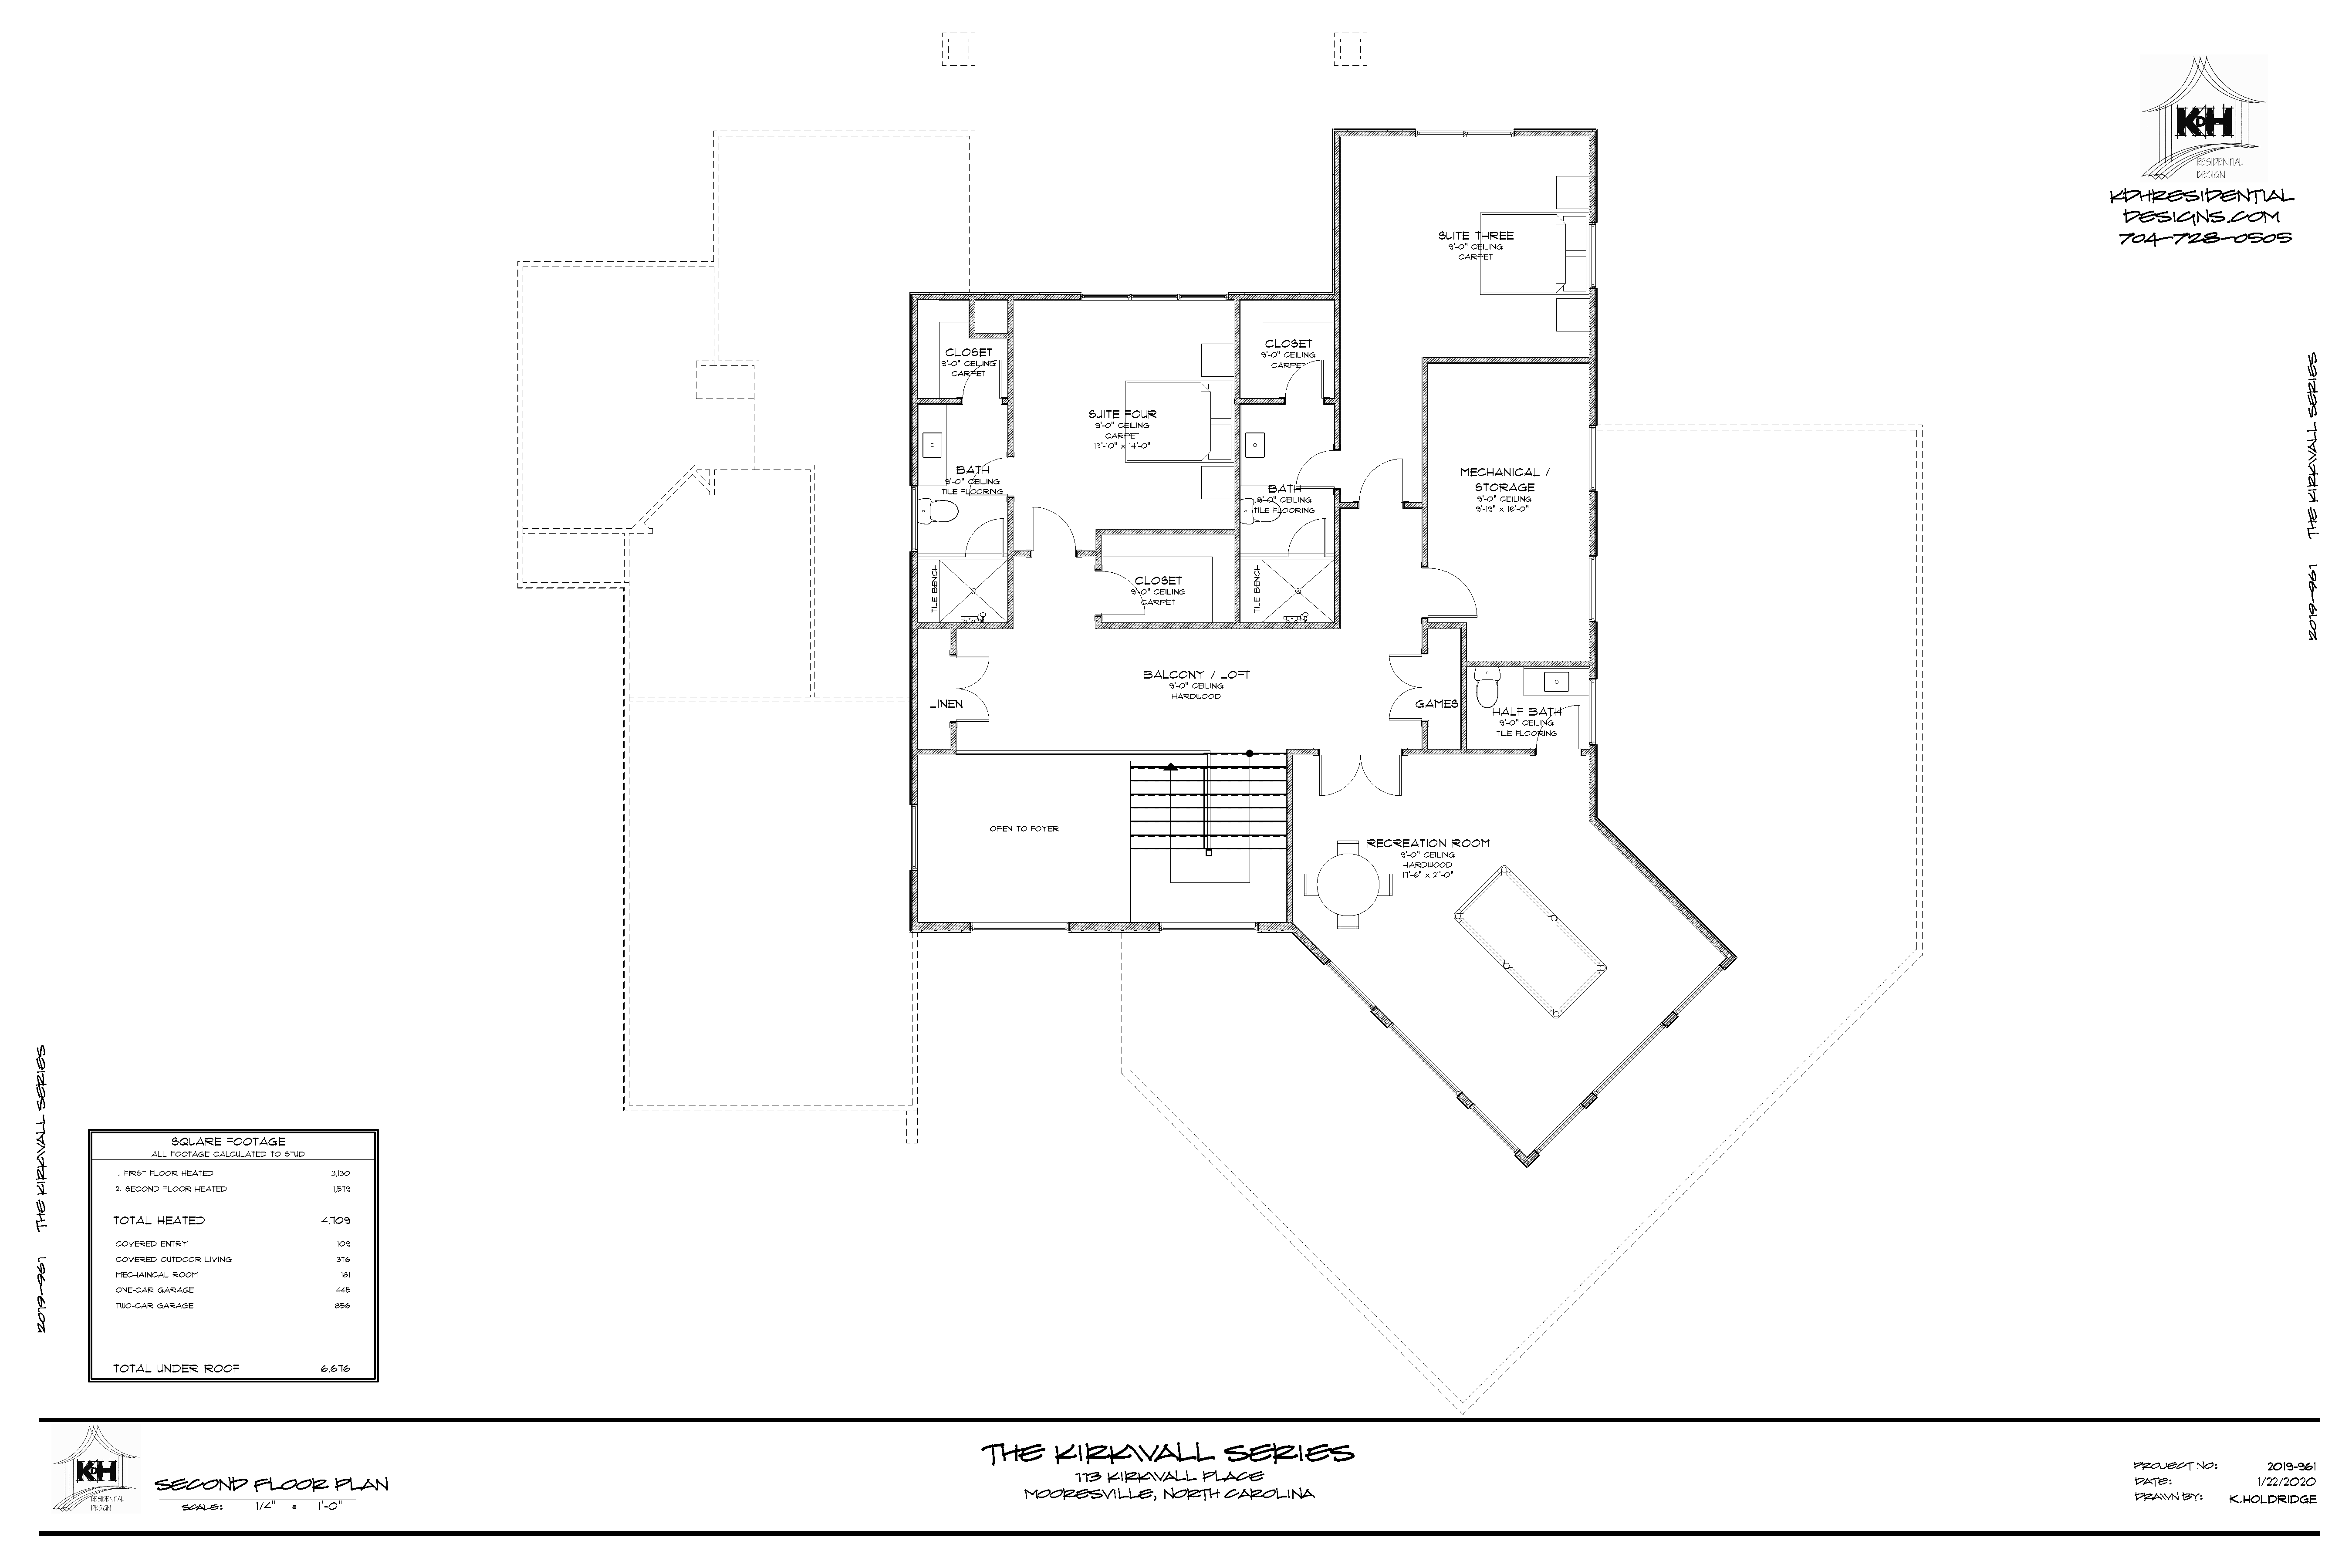 Floor Plan (Upper Level) for Proposed Home - 113 Kirkwall Place